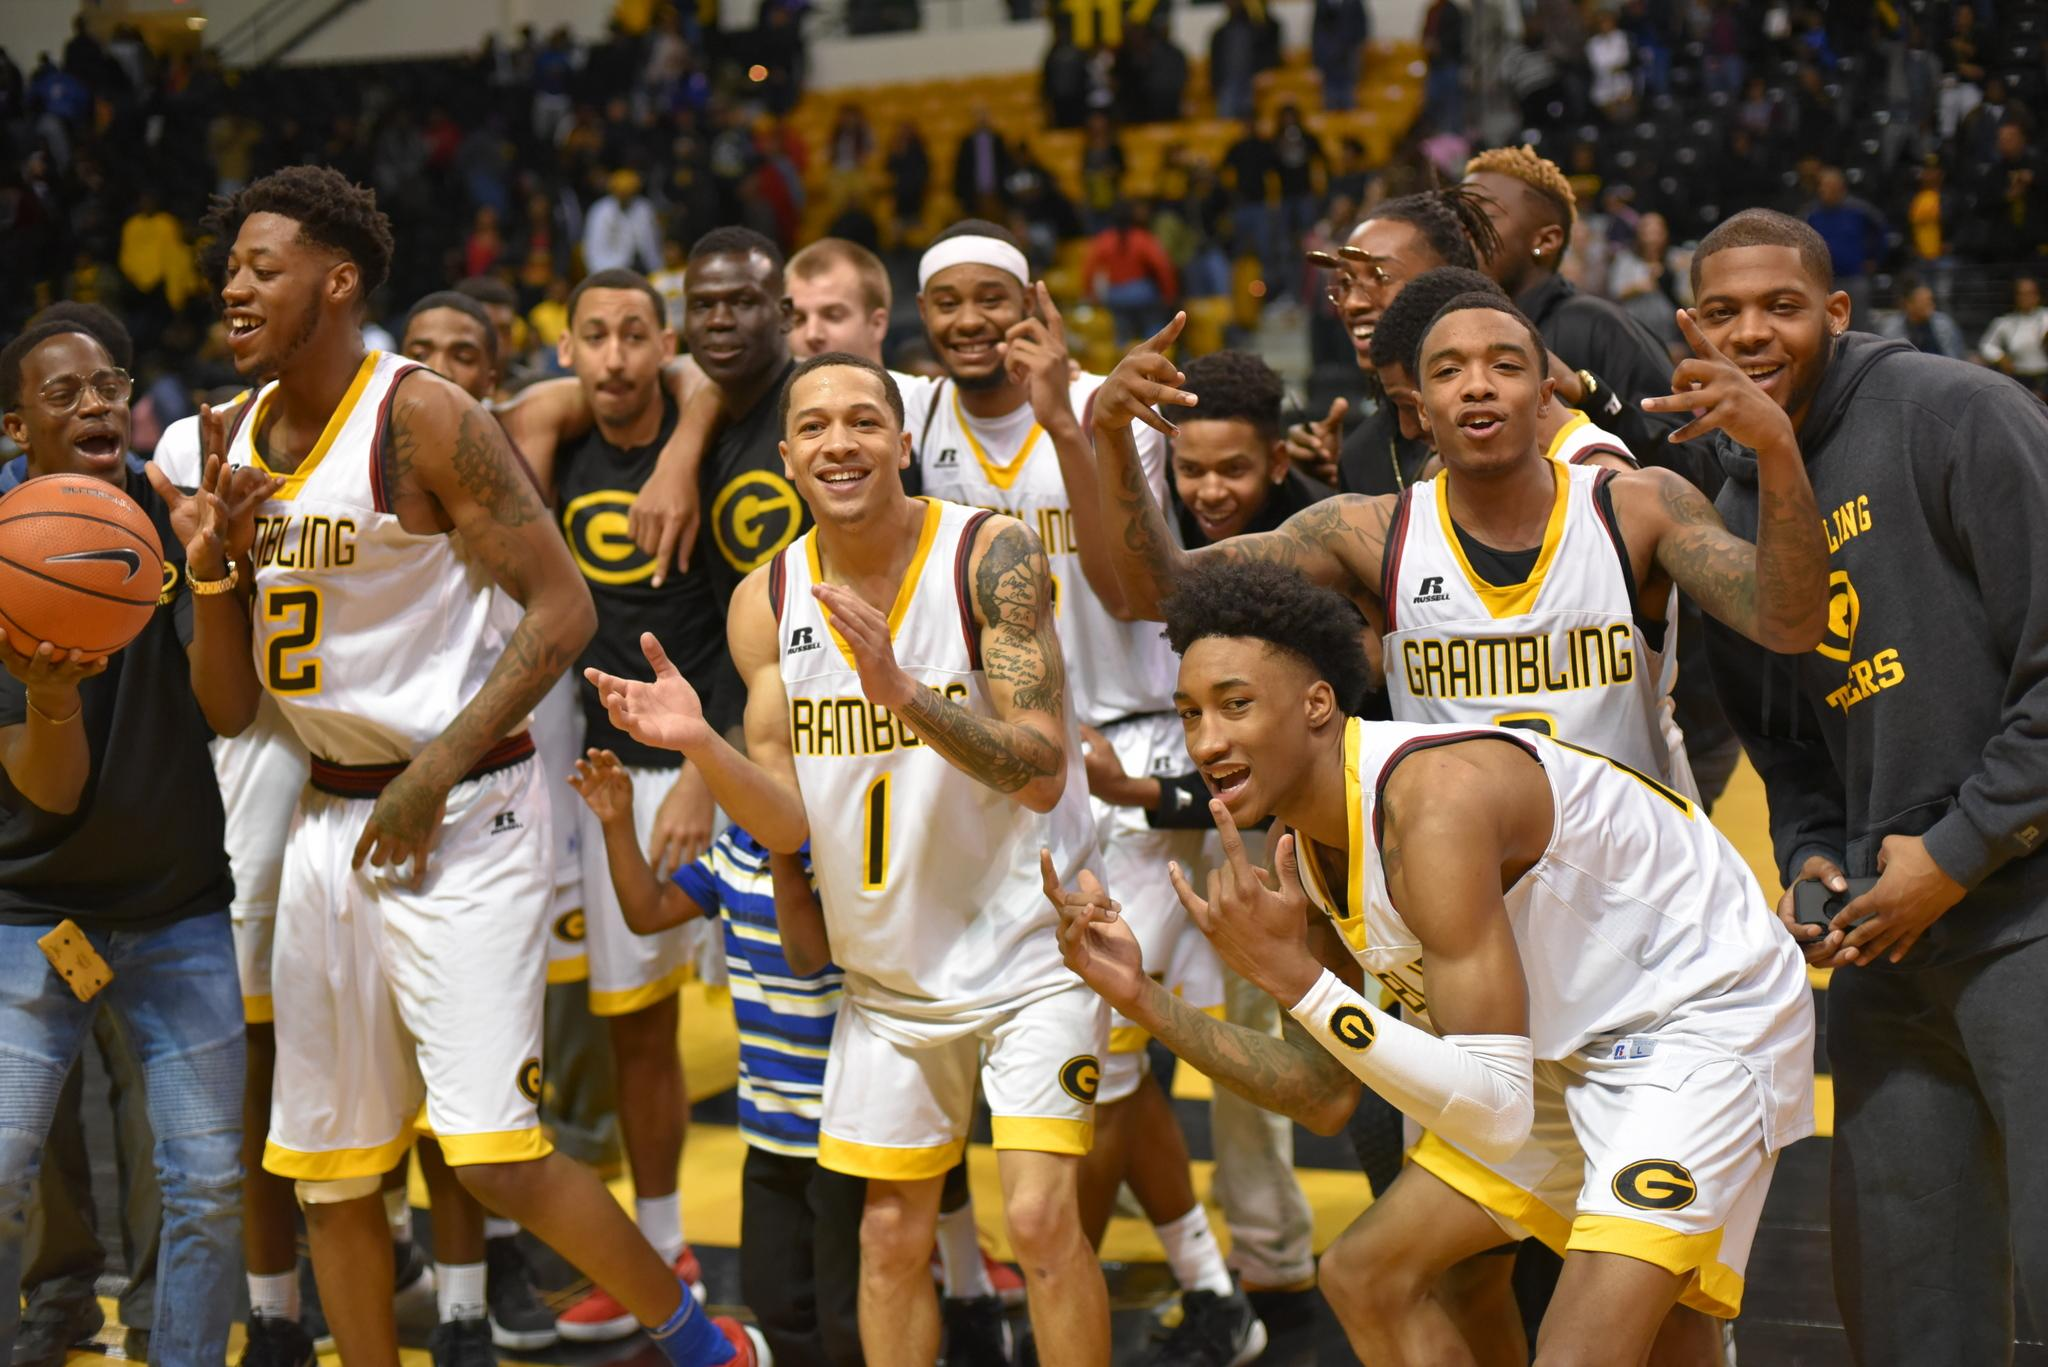 how a long-downtrodden program now has college basketball's